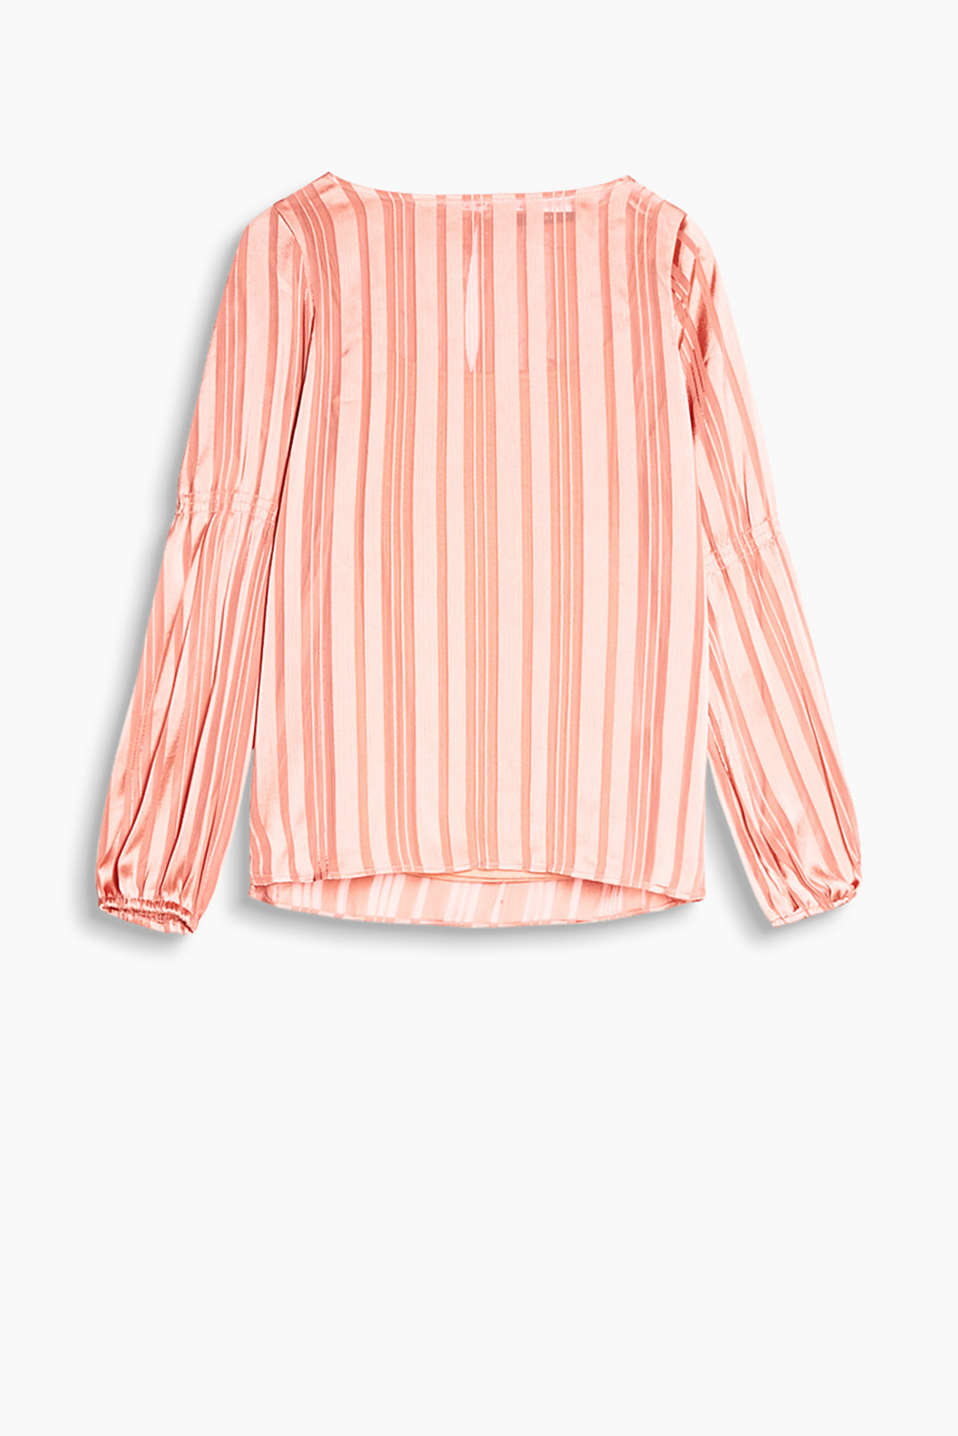 Semi-sheer blouse with shimmering stripes, a detachable spaghetti strap top and balloon sleeves